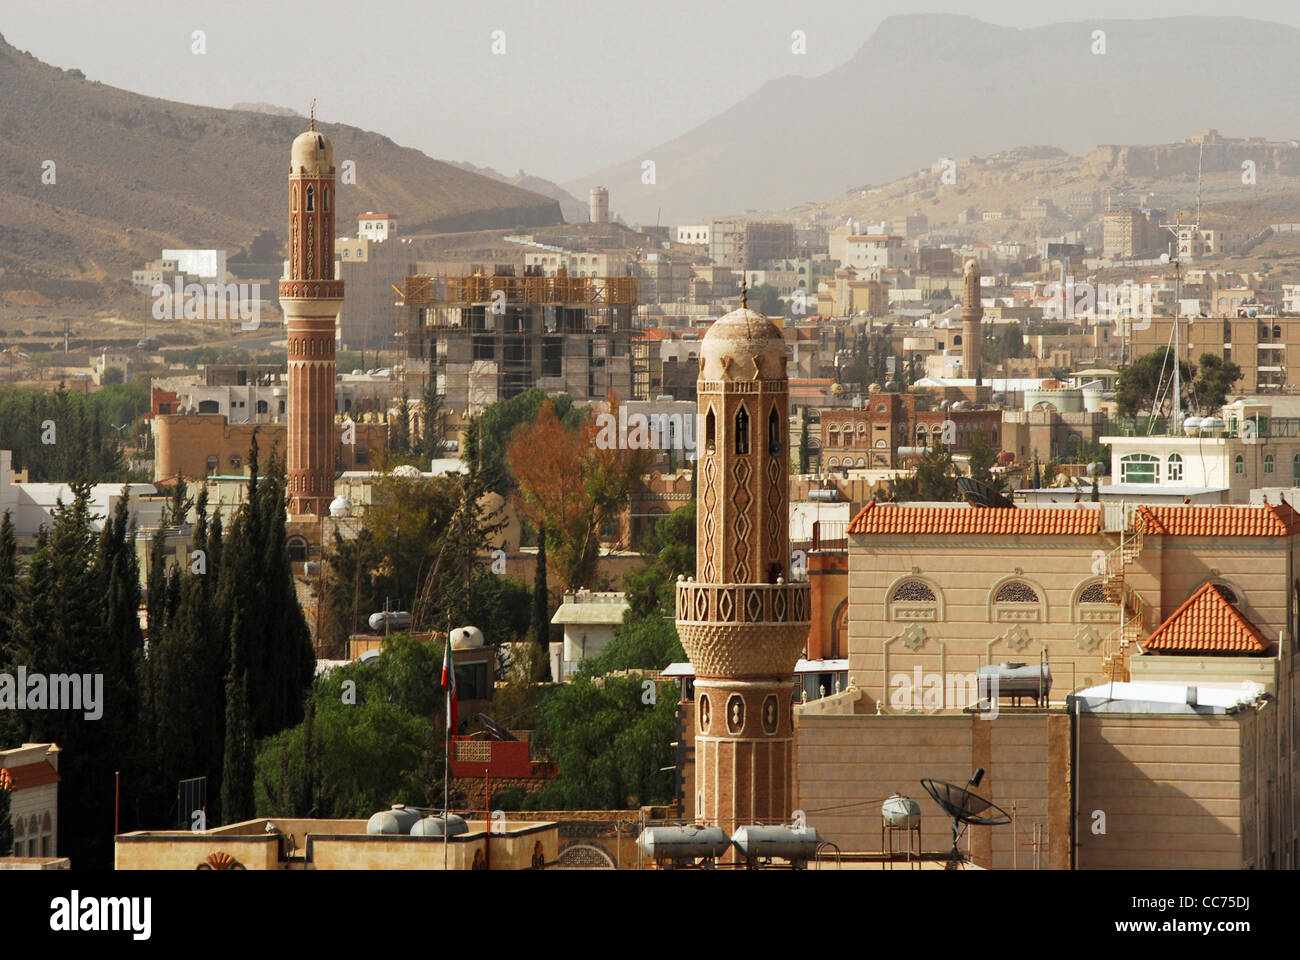 sanaa ancient capital city yemen stock photos & sanaa ancient